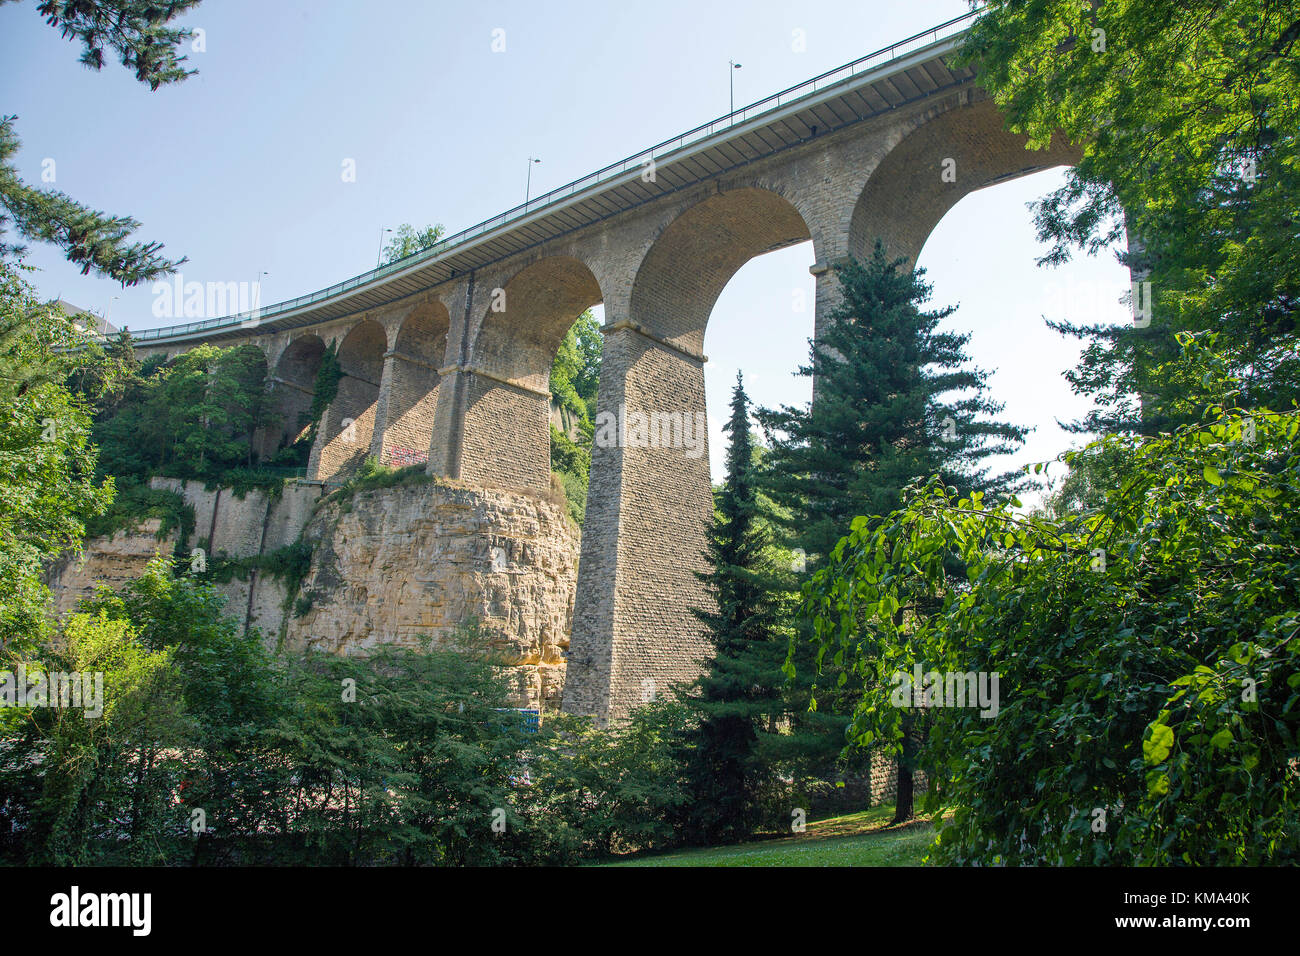 Viaduct, also known as Passerelle or old bridge, Luxembourg-city, Luxembourg, Europe Stock Photo